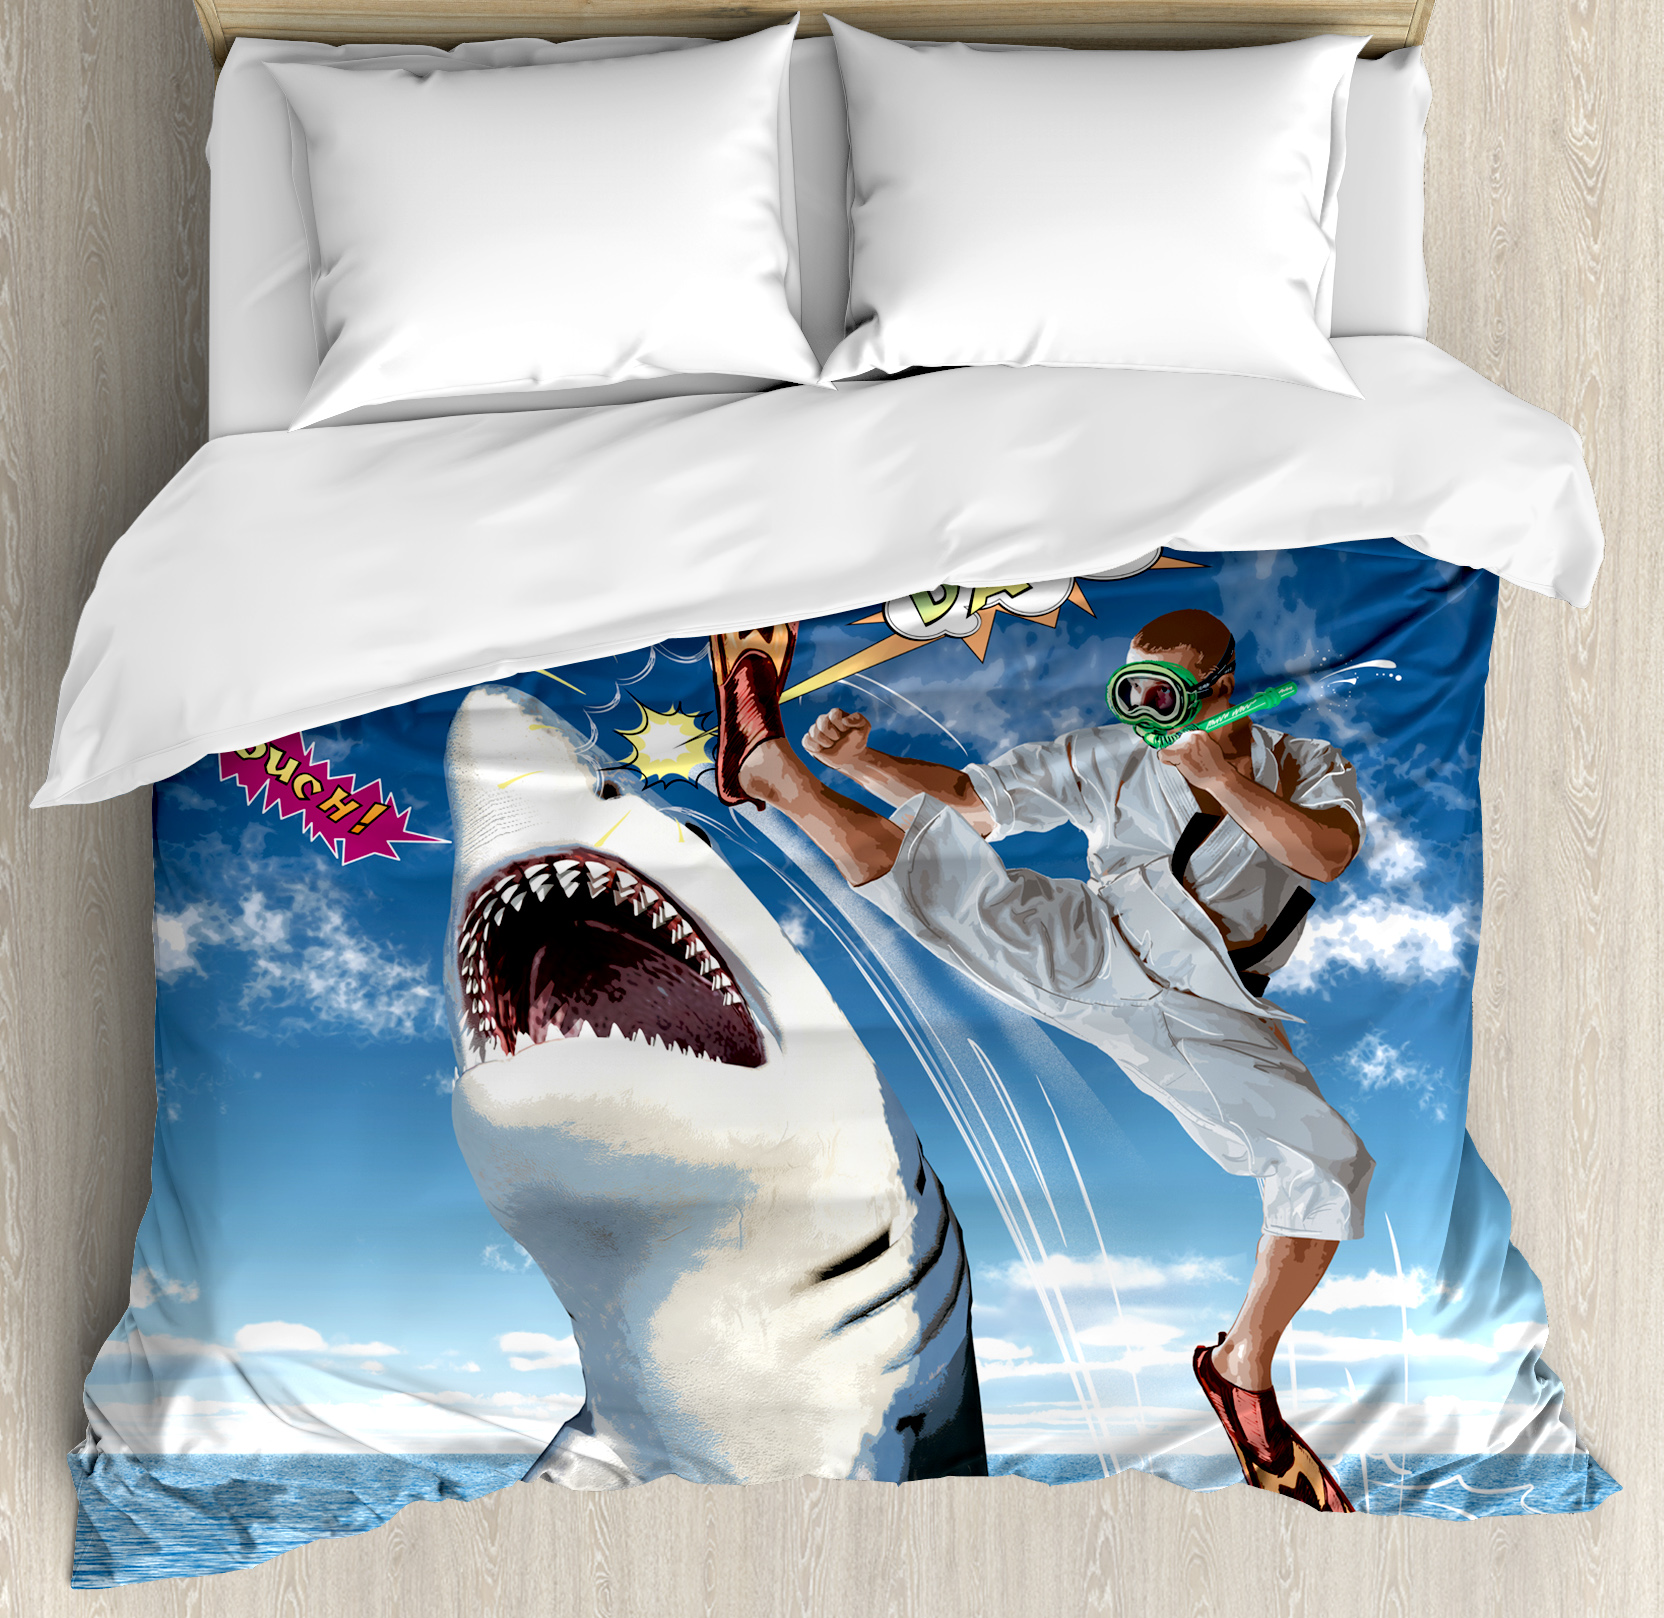 Sealife Duvet Cover Set, Unusual Marine Navy Life Animals Fish Sharks with Karate Kid and Comics Balloon Art, Decorative Bedding Set with Pillow Shams, Multicolor, by Ambesonne